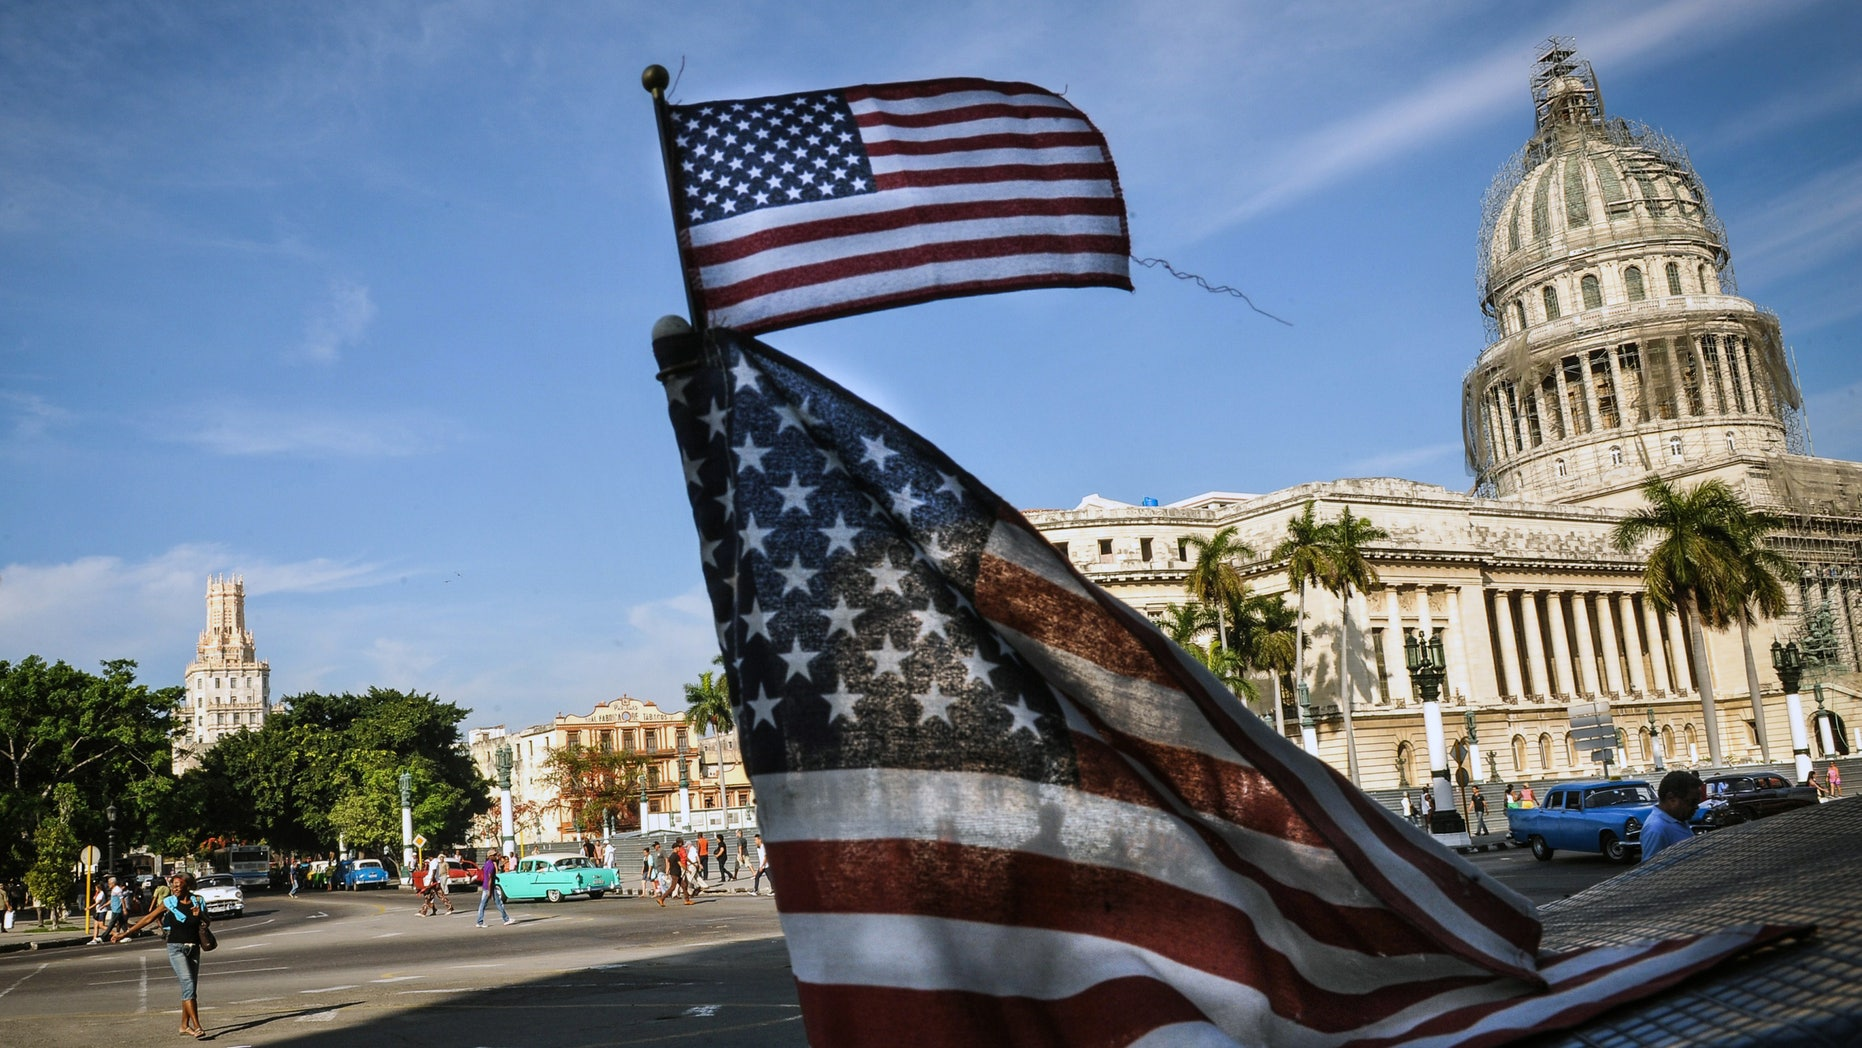 """US flags are seen in a bici-taxi near the capitol in Havana on January 23, 2015. Hours into historic US-Cuba talks in Havana, a Cuban official came out to boast about the """"relaxed"""" atmosphere at the meeting between the old Cold War adversaries. After barely speaking face-to-face since the 1960s, the United States and Cuba took big steps toward normalizing ties by holding a two-day meeting, even though the talks highlighted enduring rifts between the nations. AFP PHOTO / Yamil LAGE        (Photo credit should read YAMIL LAGE/AFP/Getty Images)"""